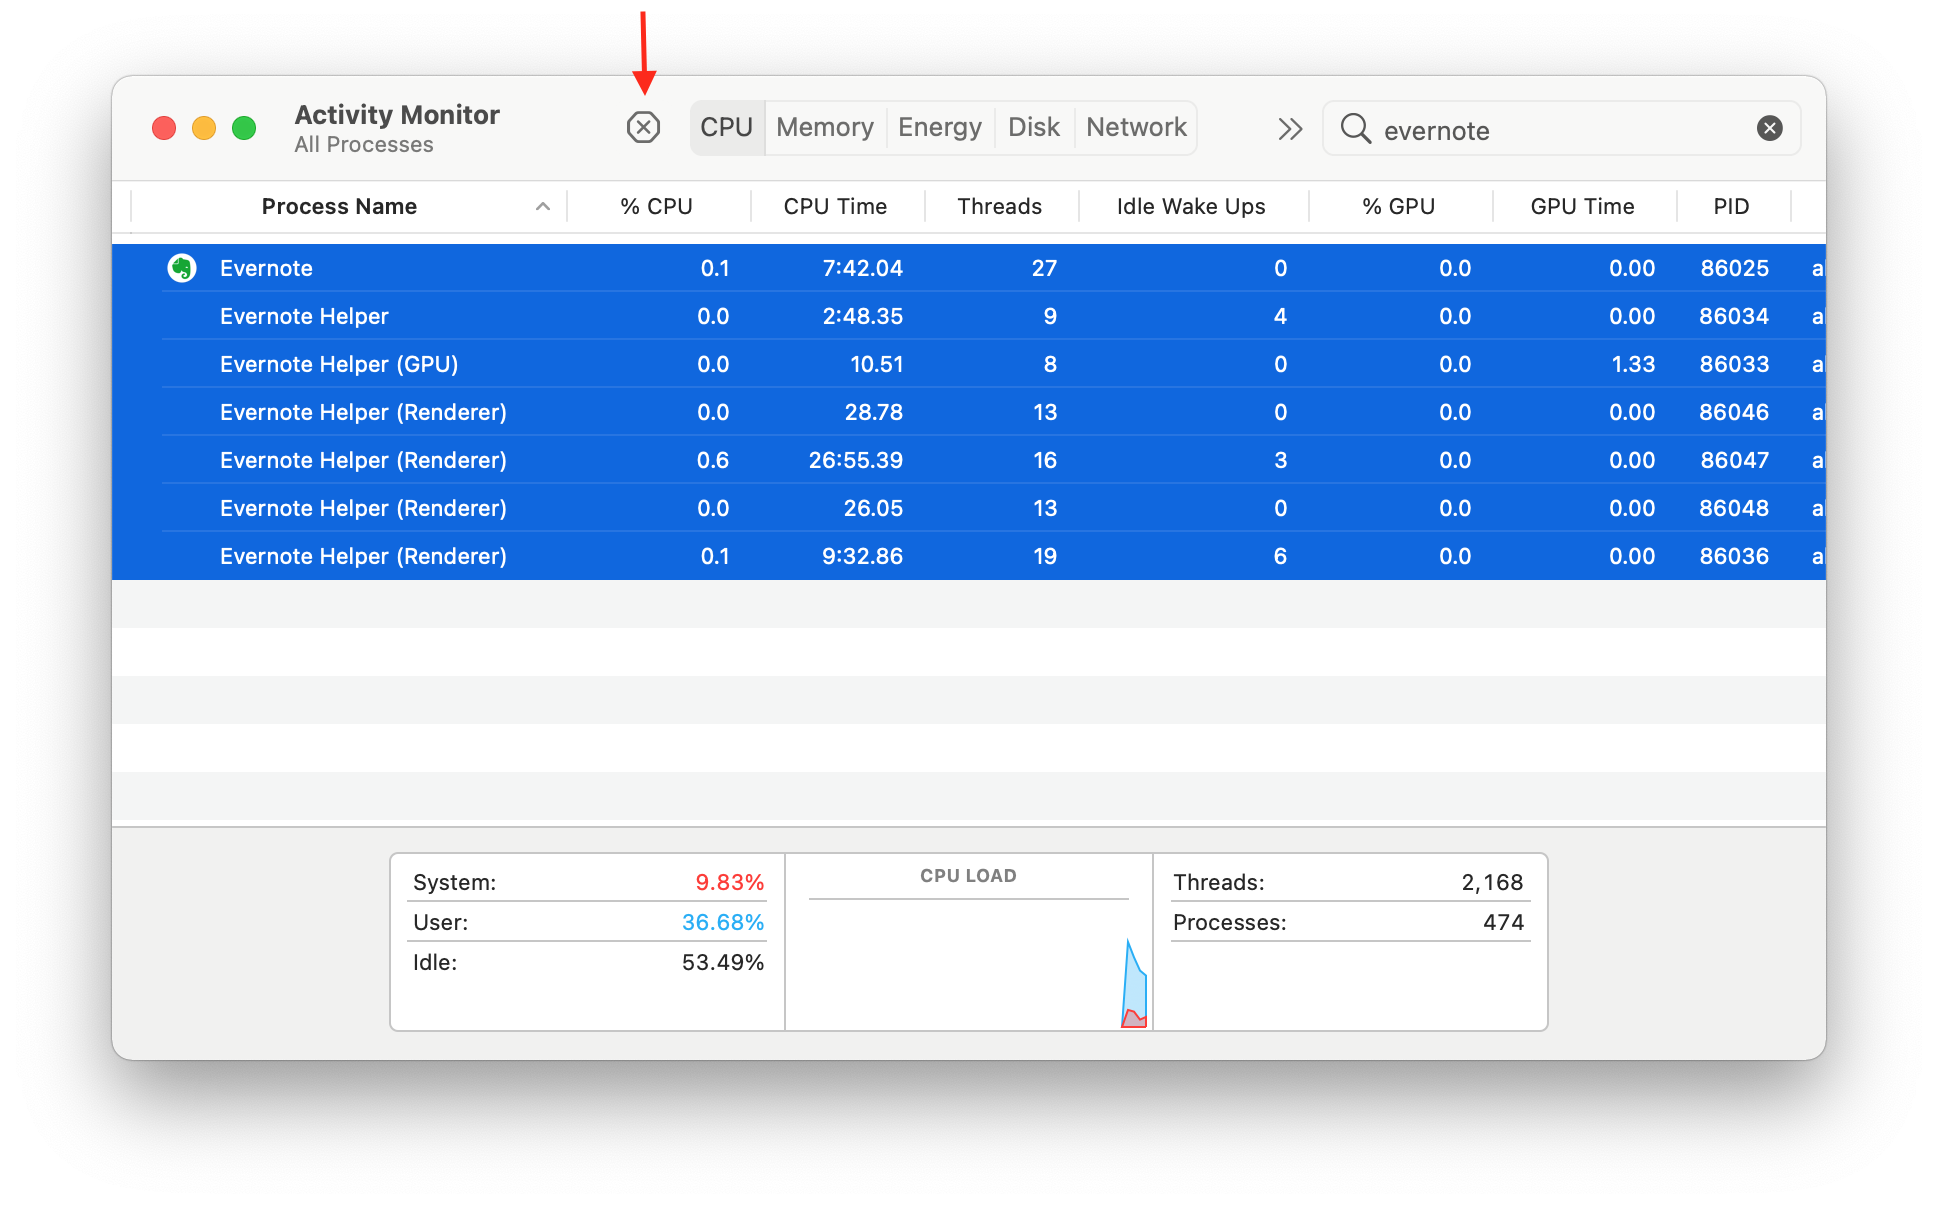 activity monitor showing evernote processes